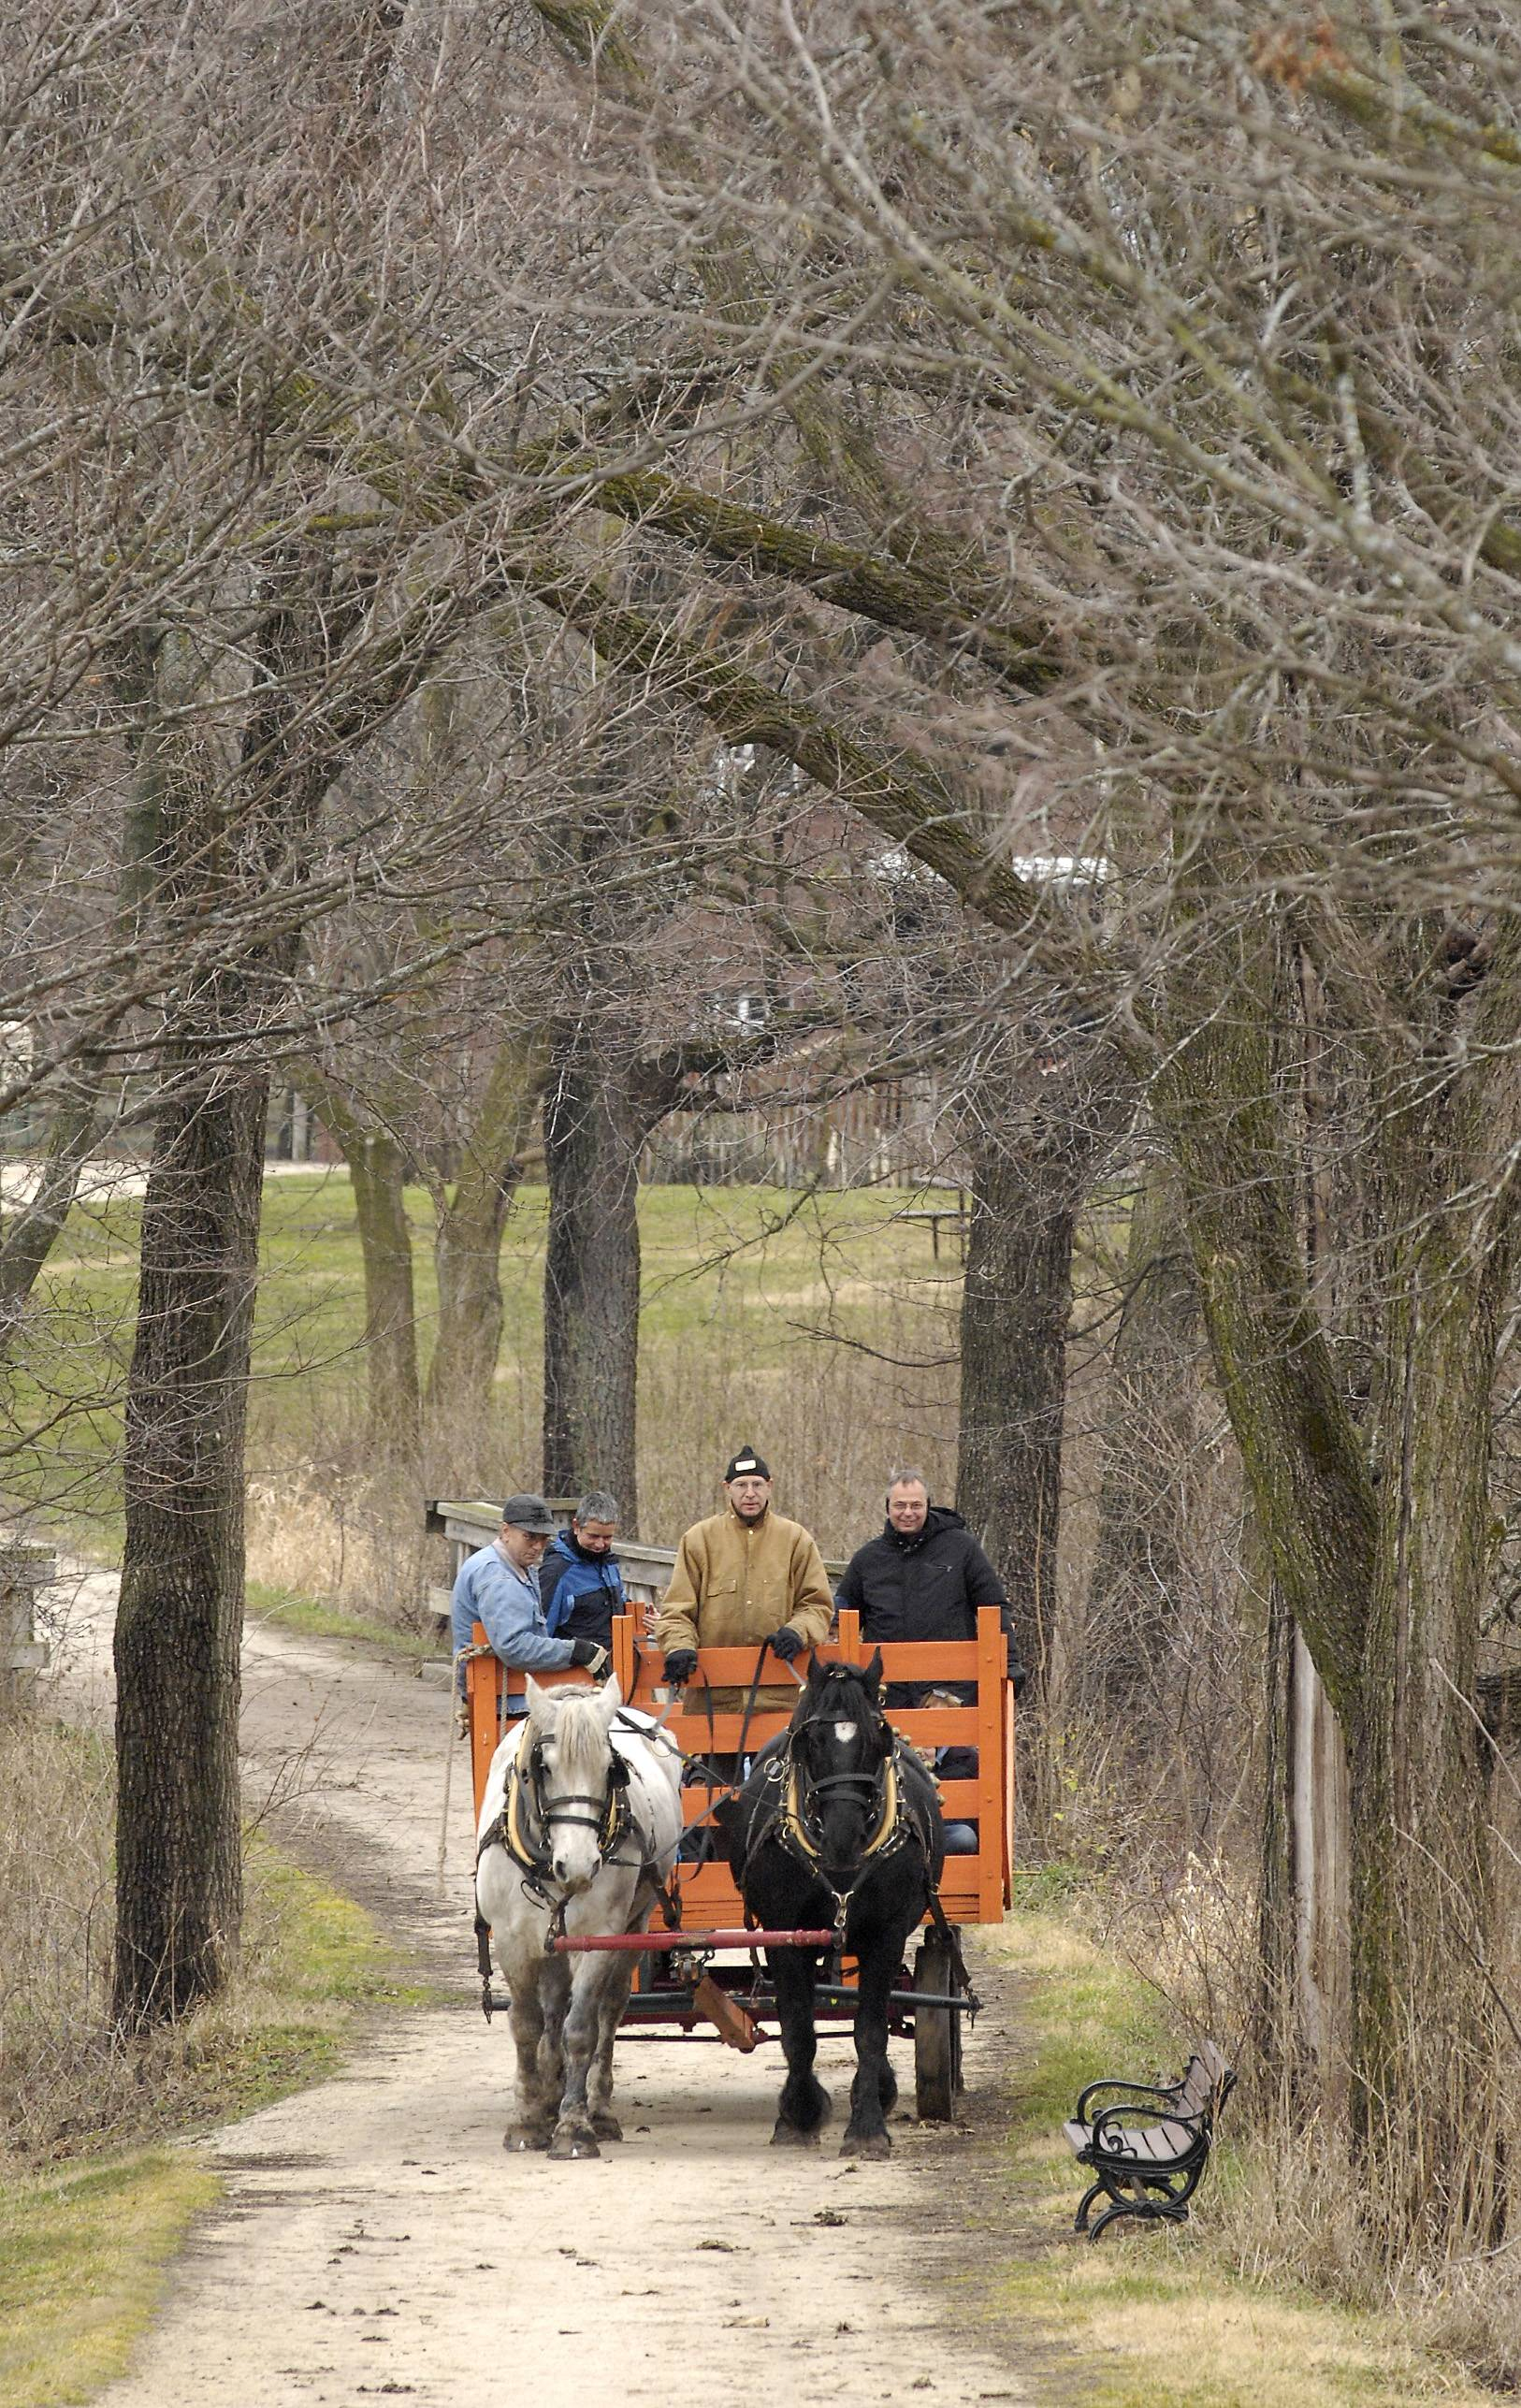 Horse-drawn wagon rides will be offered during the spring at Kline Creek Farm in West Chicago as part of a DuPage Forest Preserve District plan to offer year-round rides.